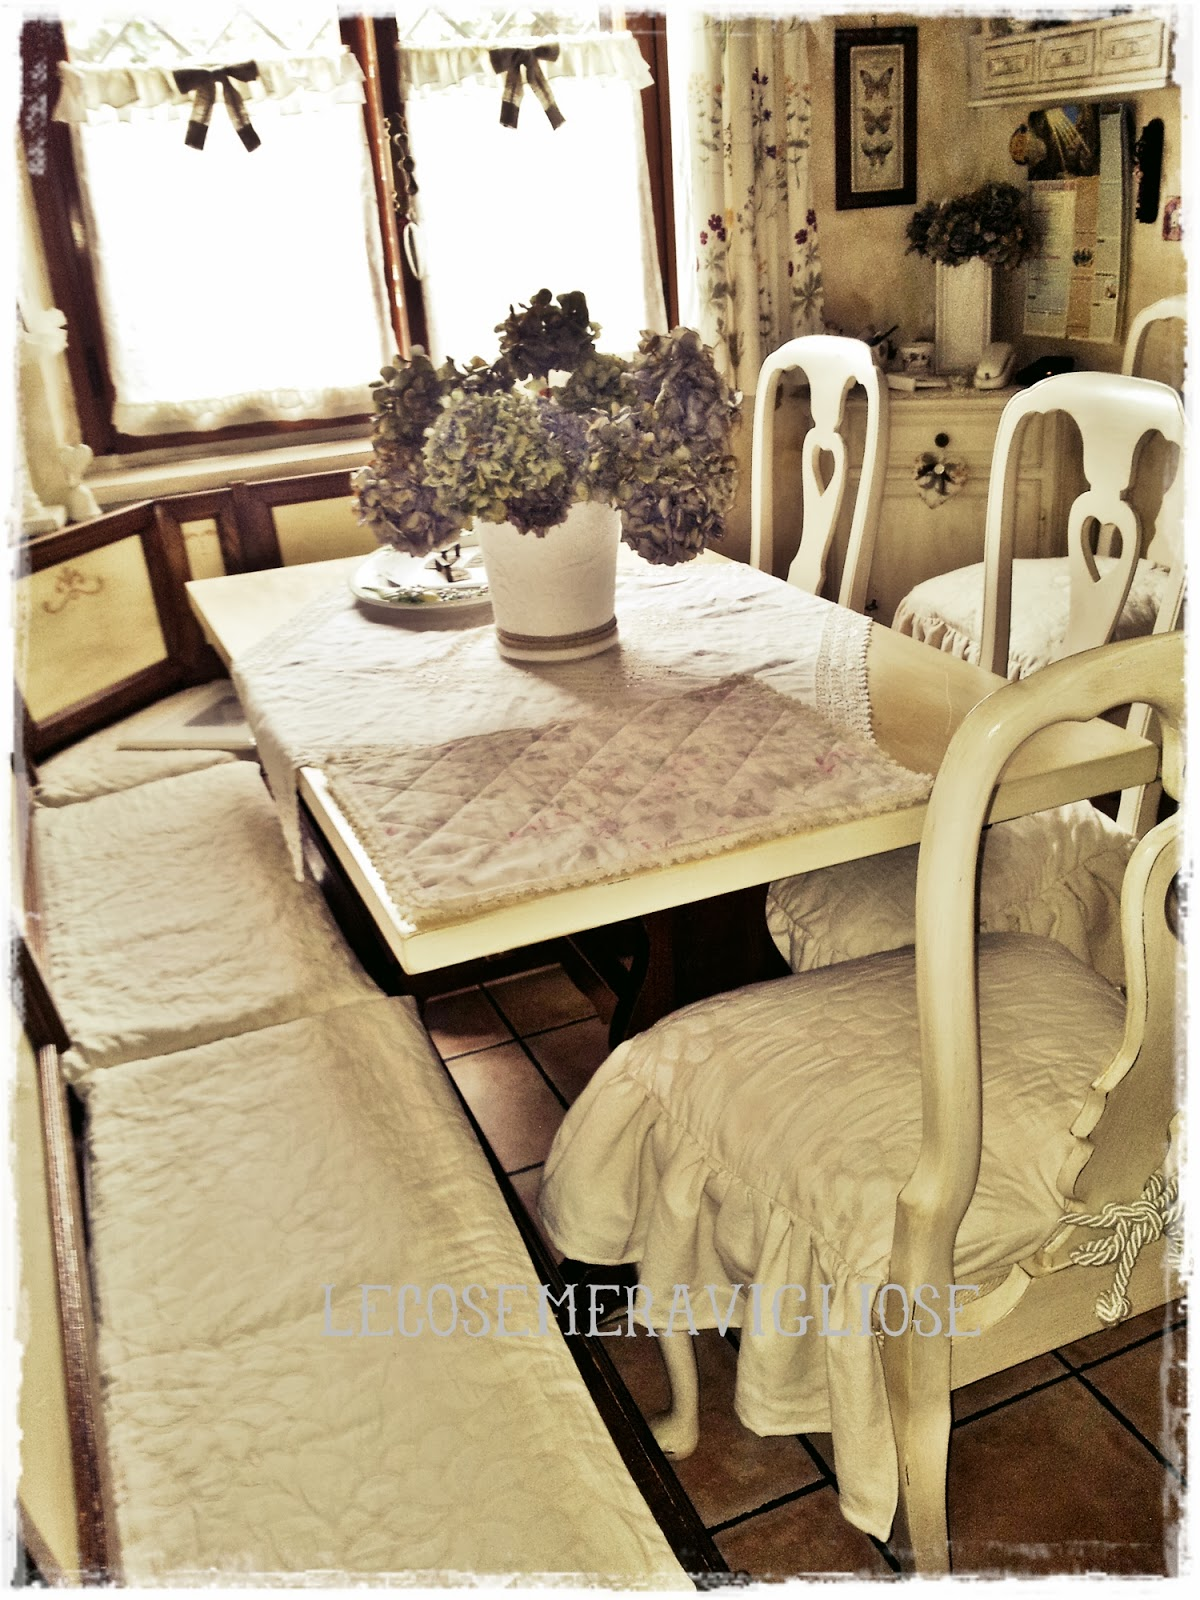 Lecosemeravigliose shabby e country chic passions tende - Cuscini per cucina country ...